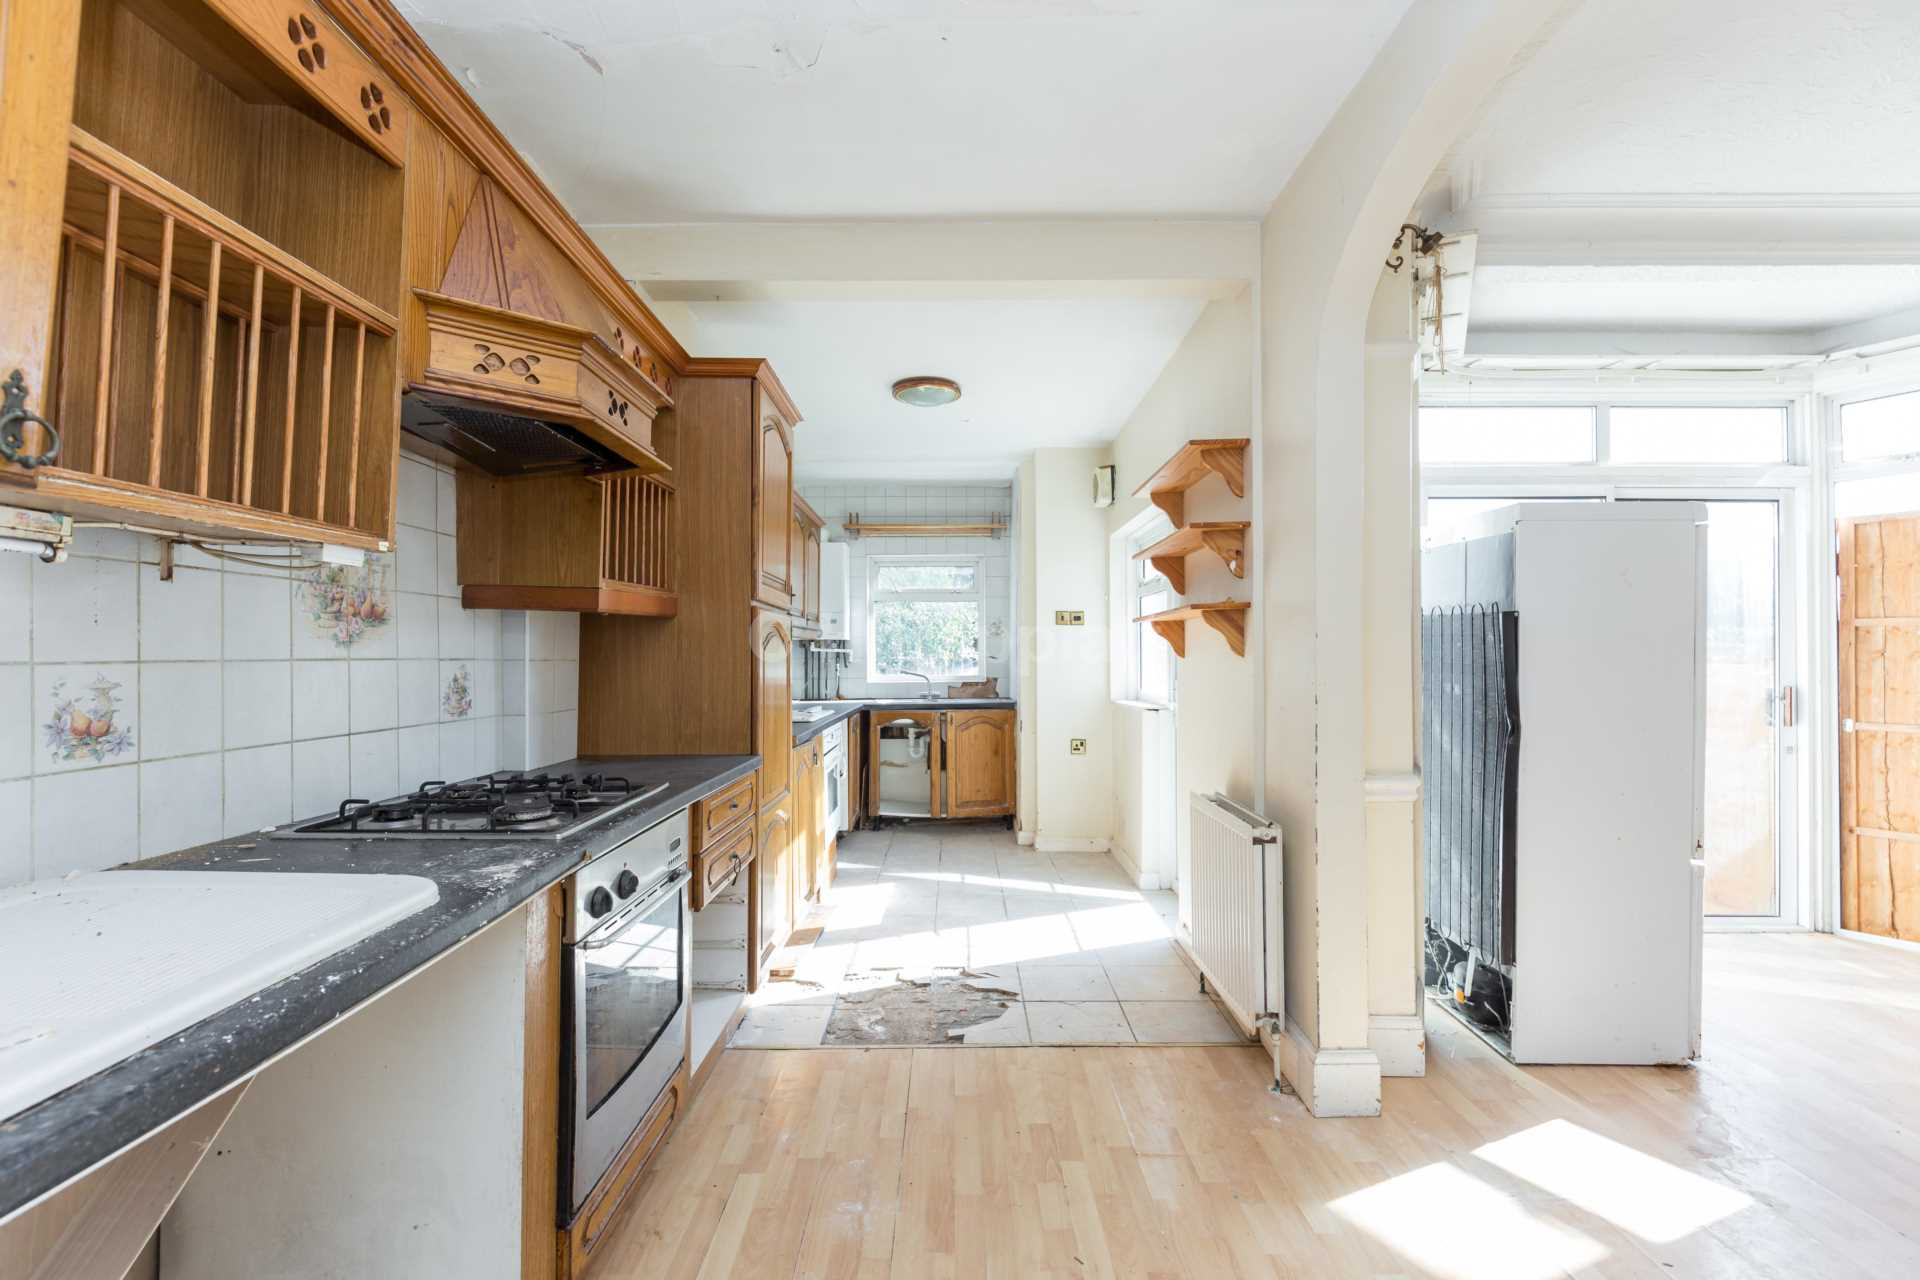 Halstead Road, Winchmore Hill, N21, Image 6